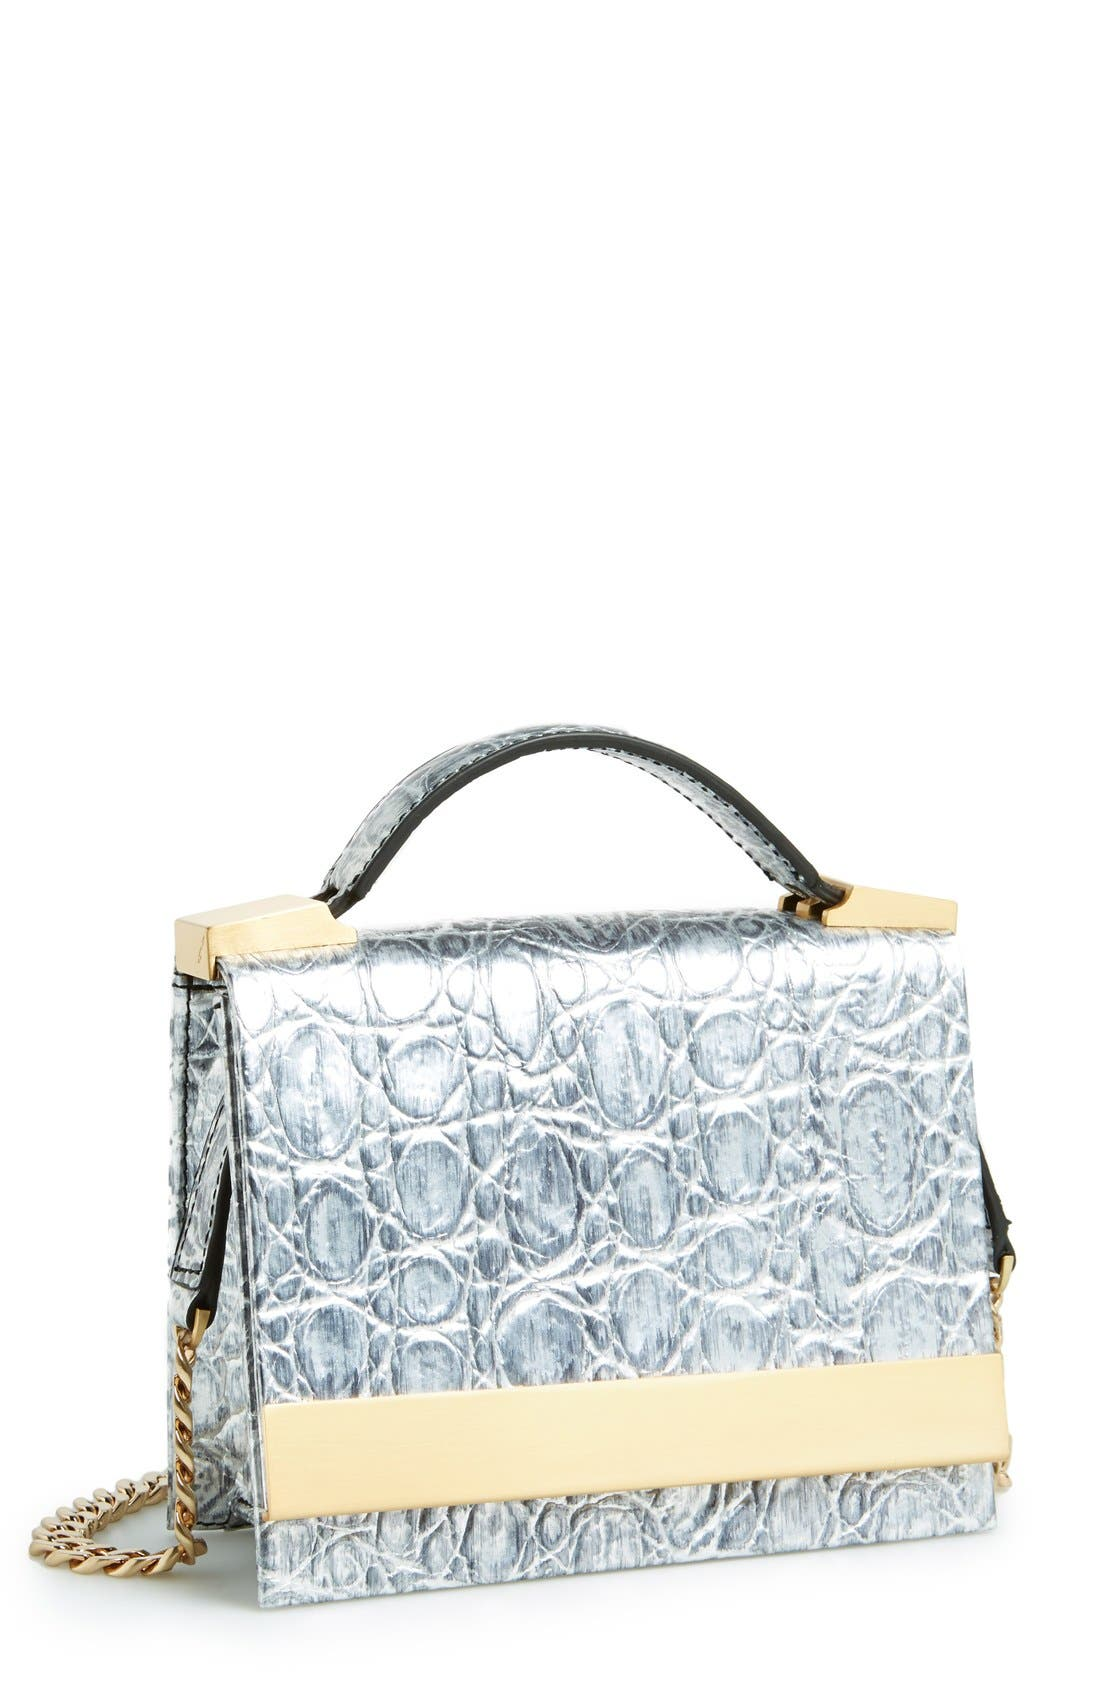 Main Image - B Brian Atwood 'Ava' Metallic Leather Top Handle Convertible Clutch